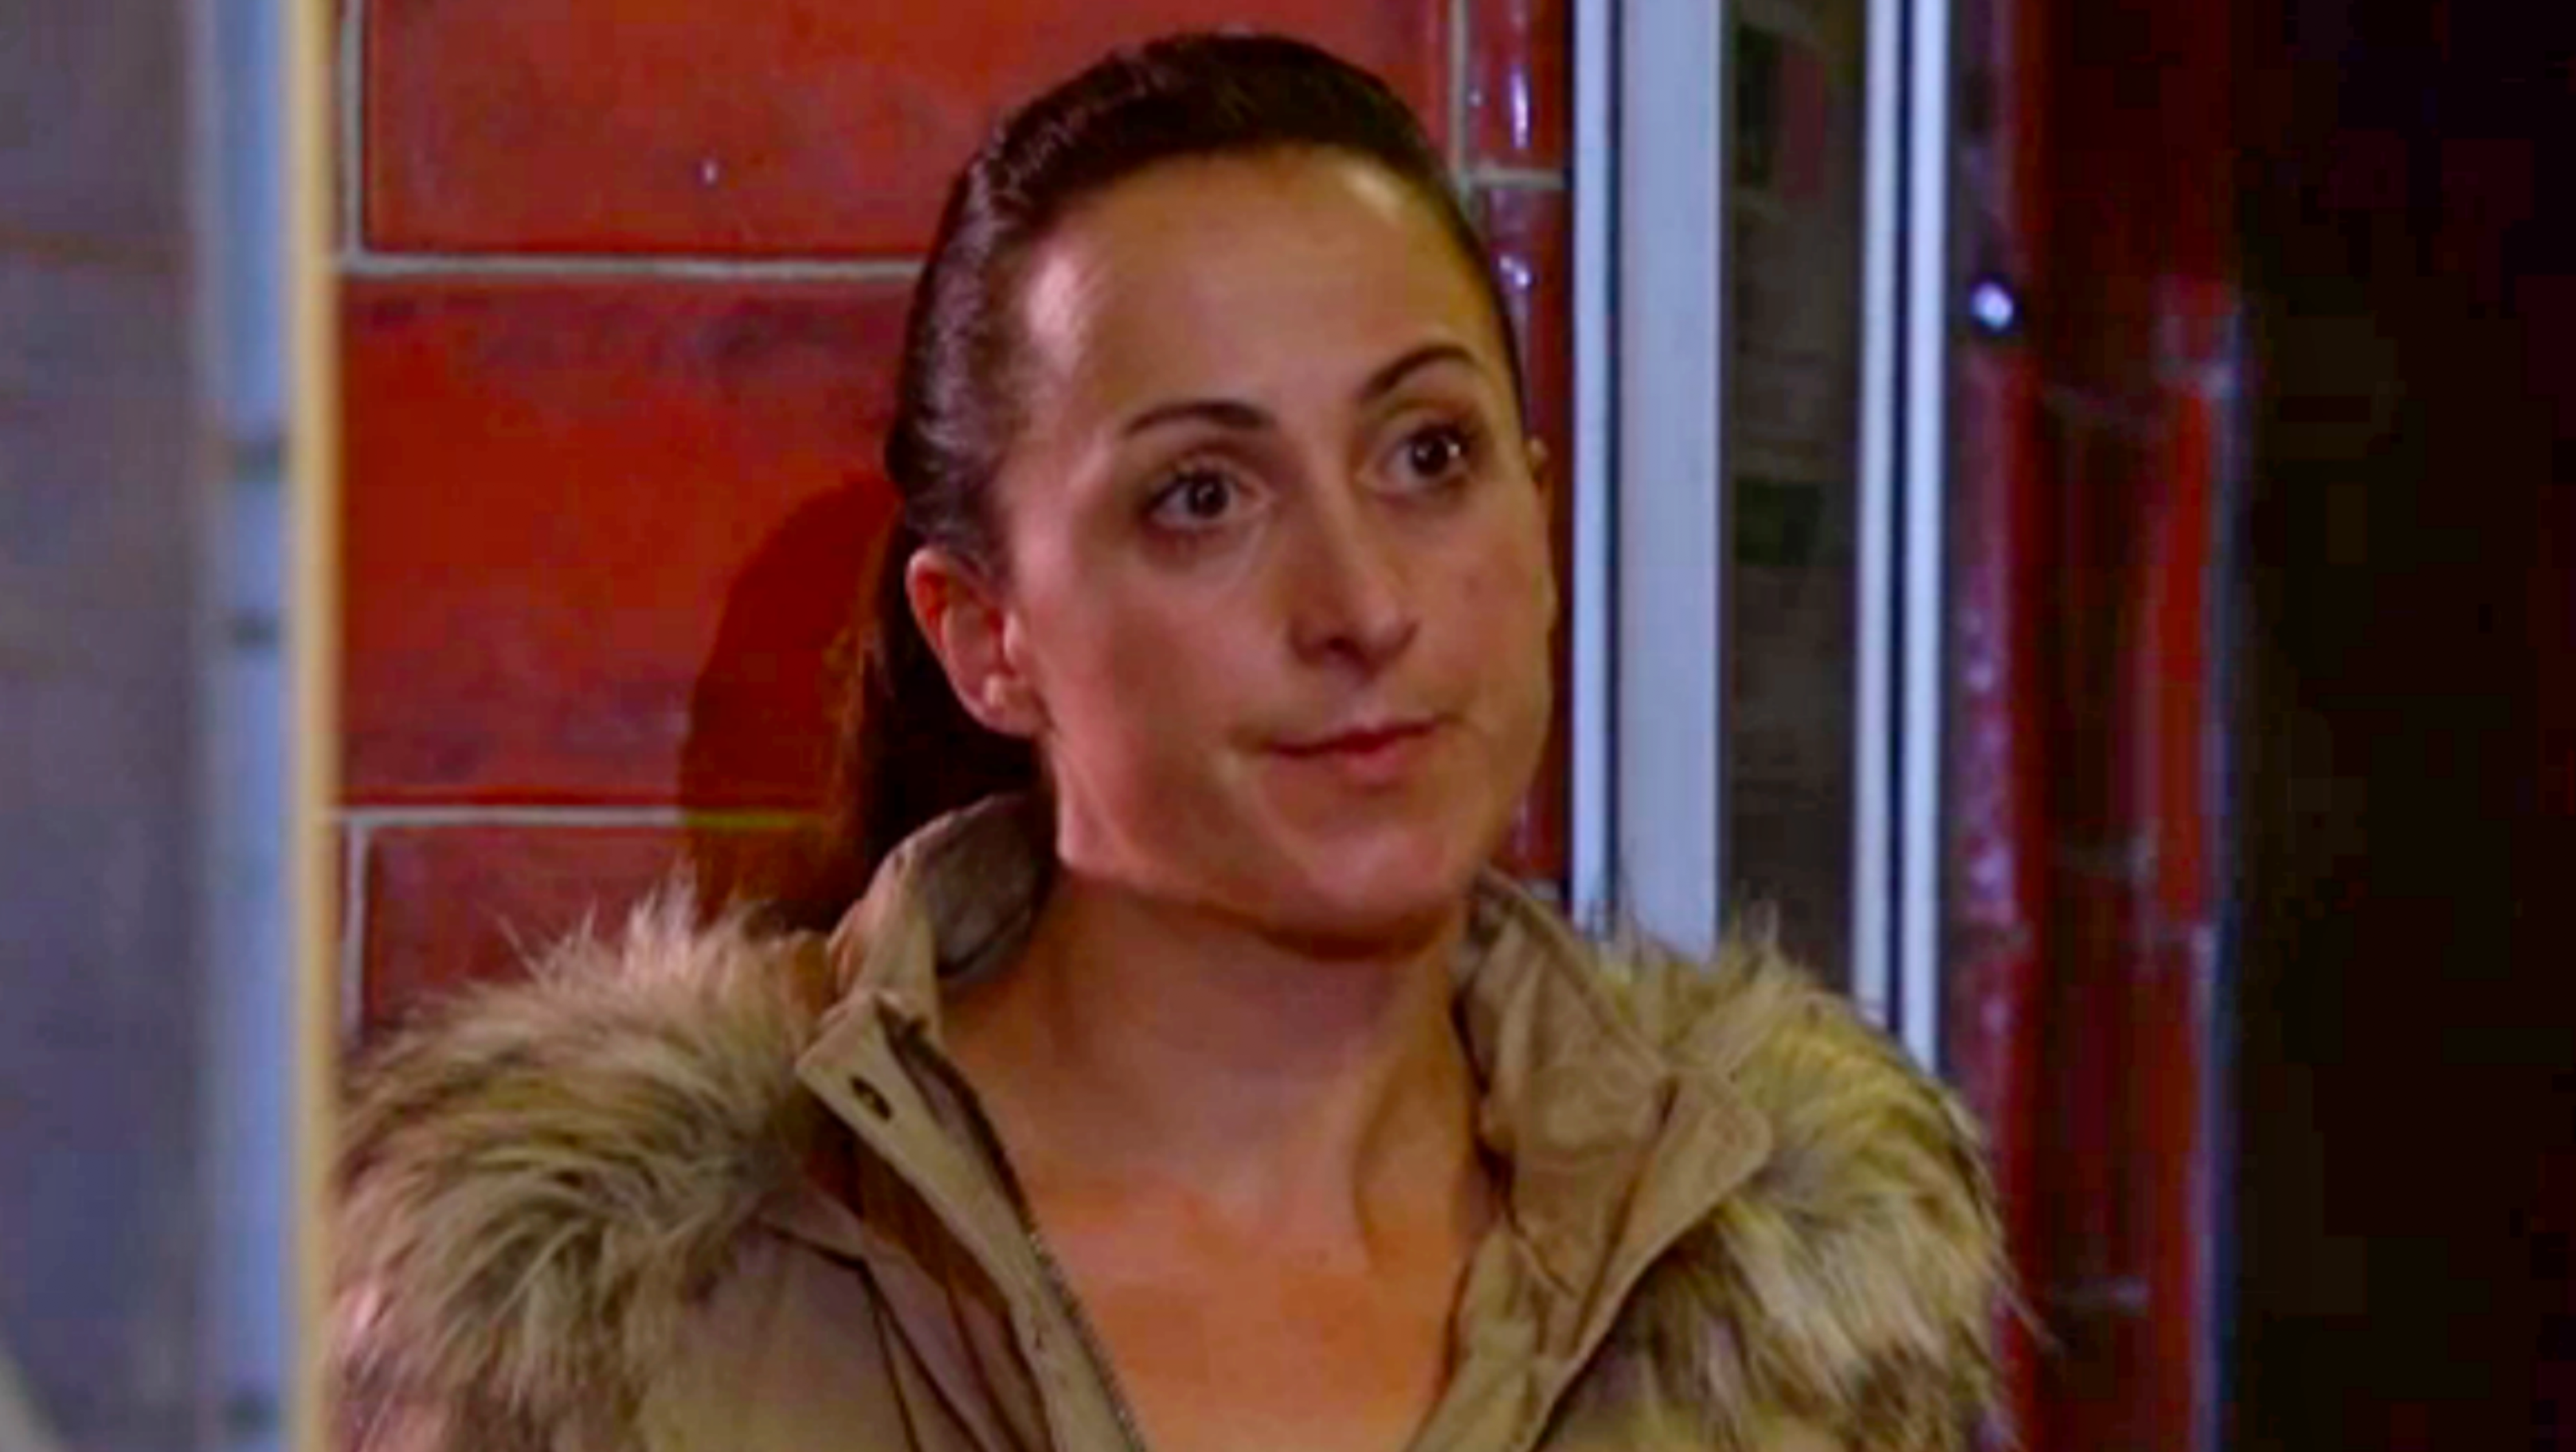 EastEnders spoilers: Return revealed for Sonia Fowler as Natalie Cassidy starts filming again